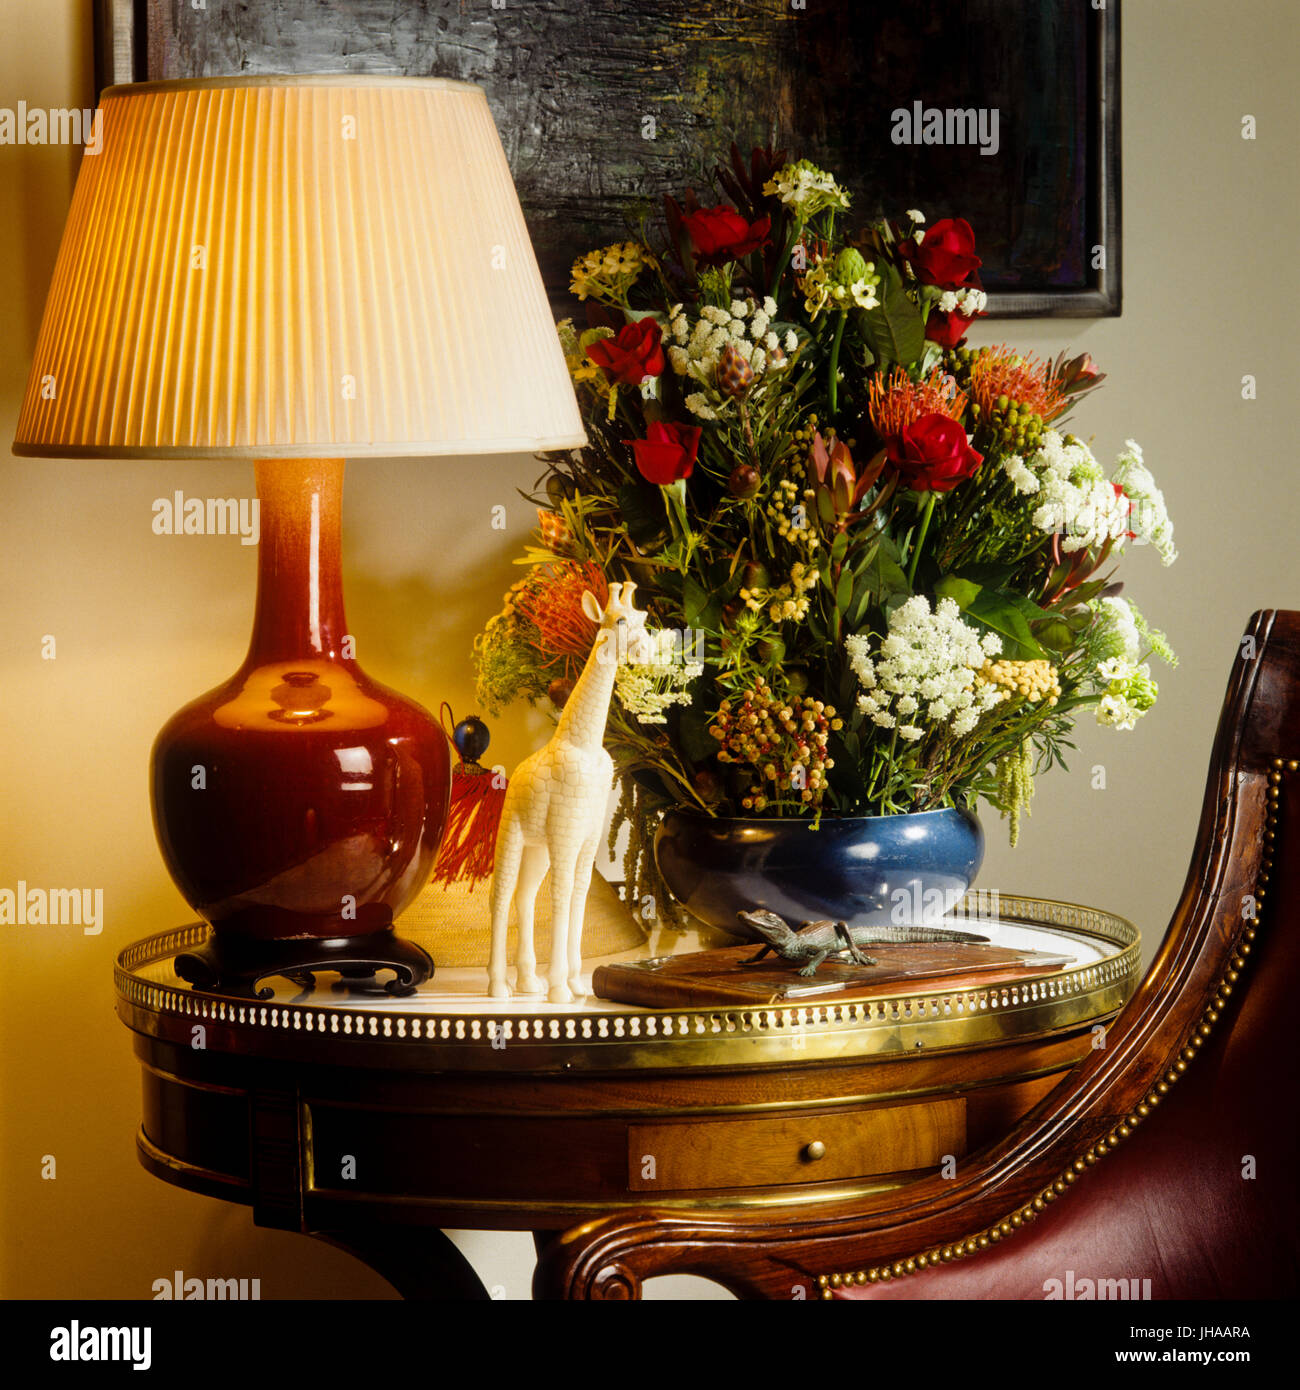 Lit lamp and flowers on table - Stock Image